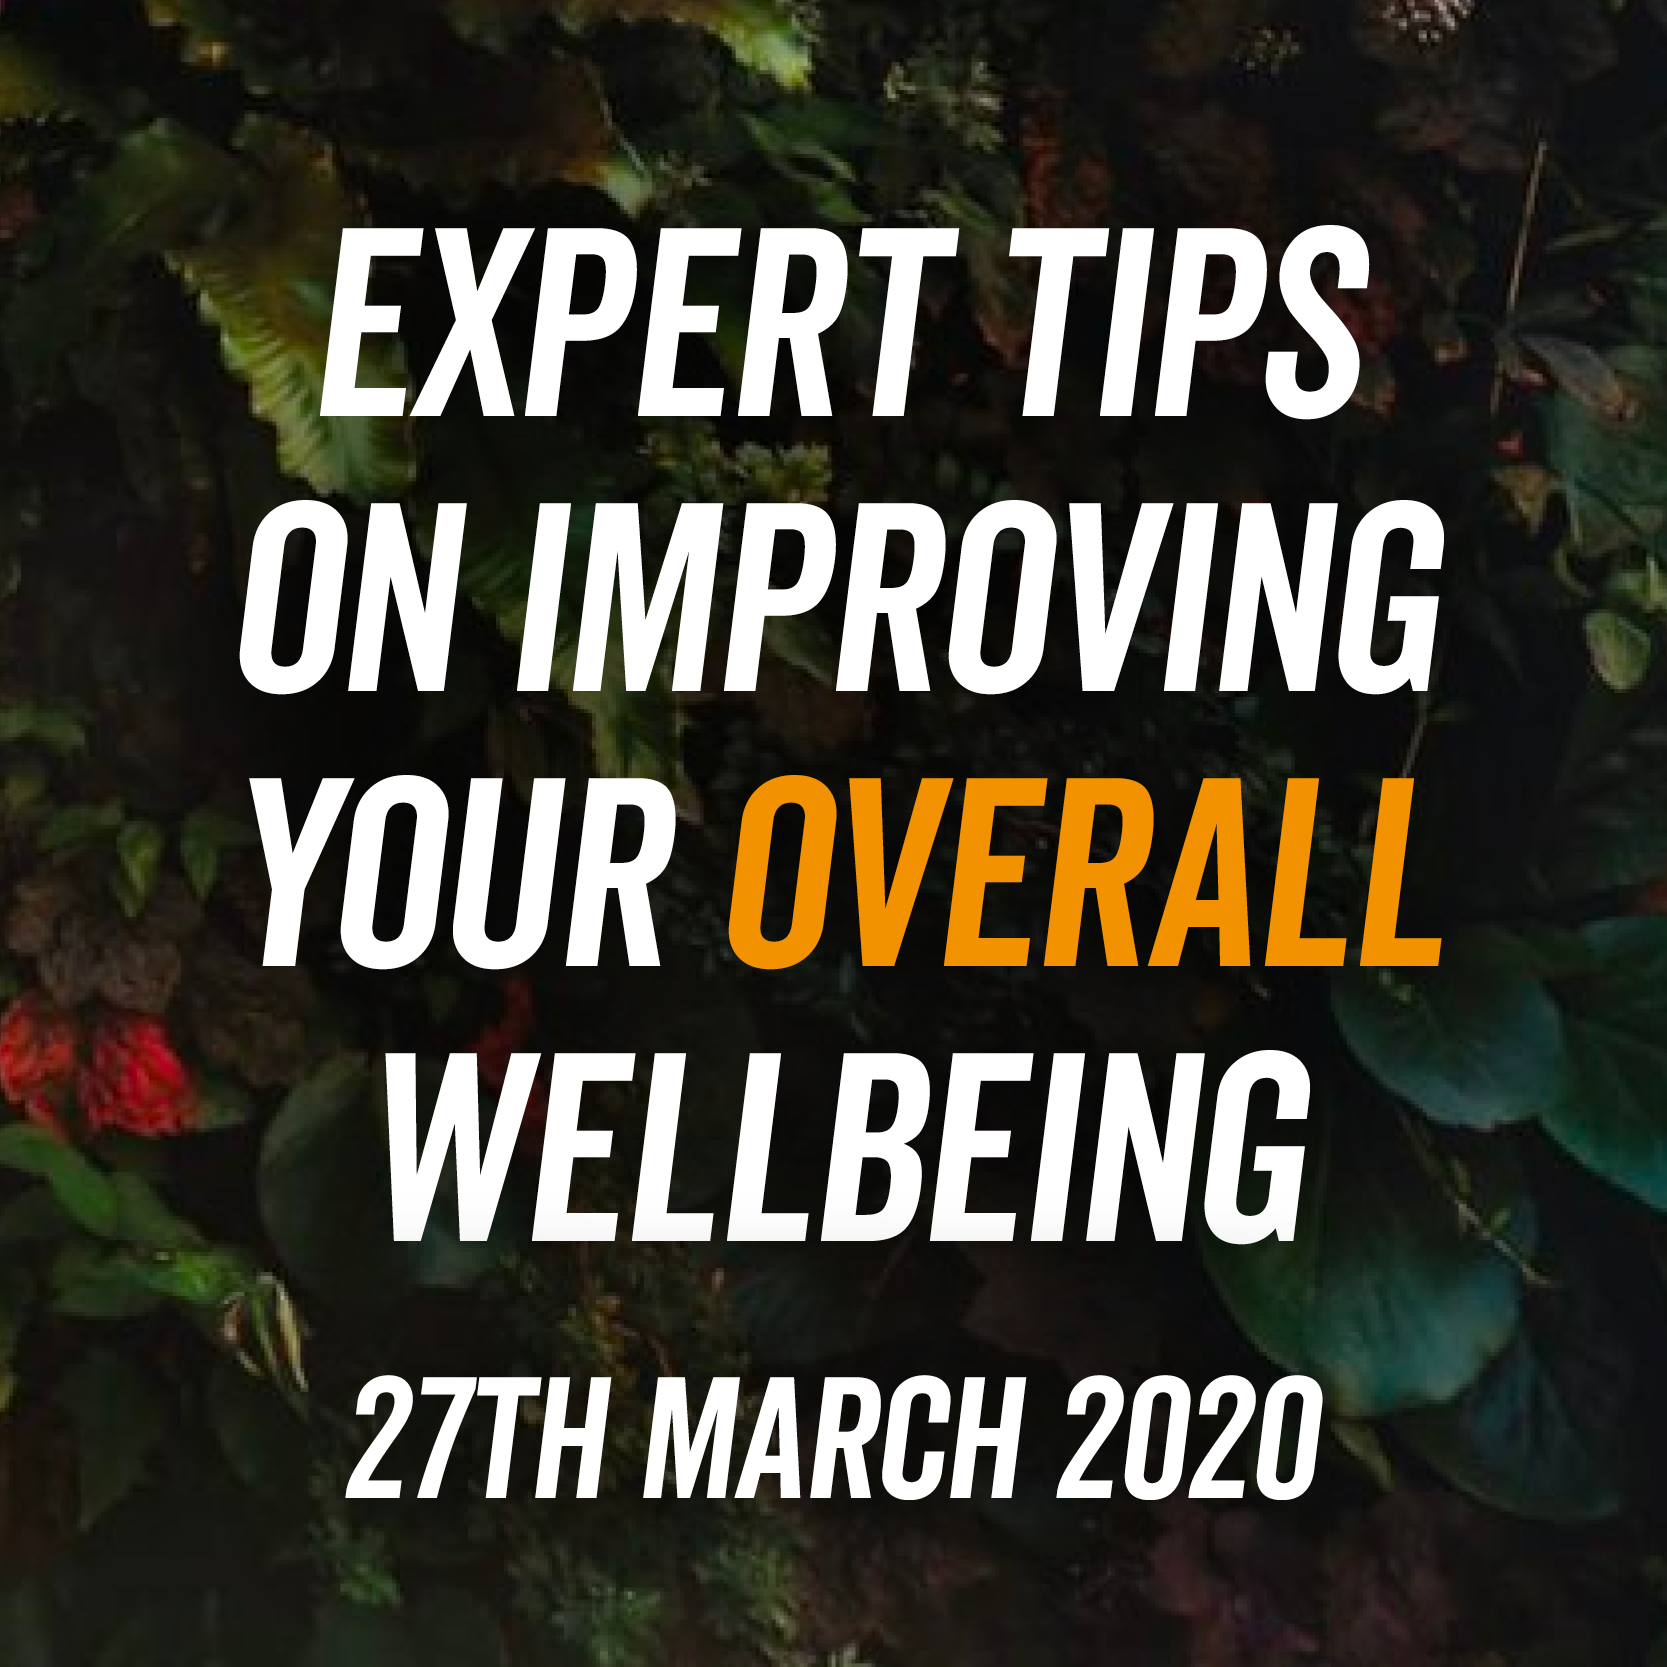 Expert Tips On Improving Your Overall Wellbeing